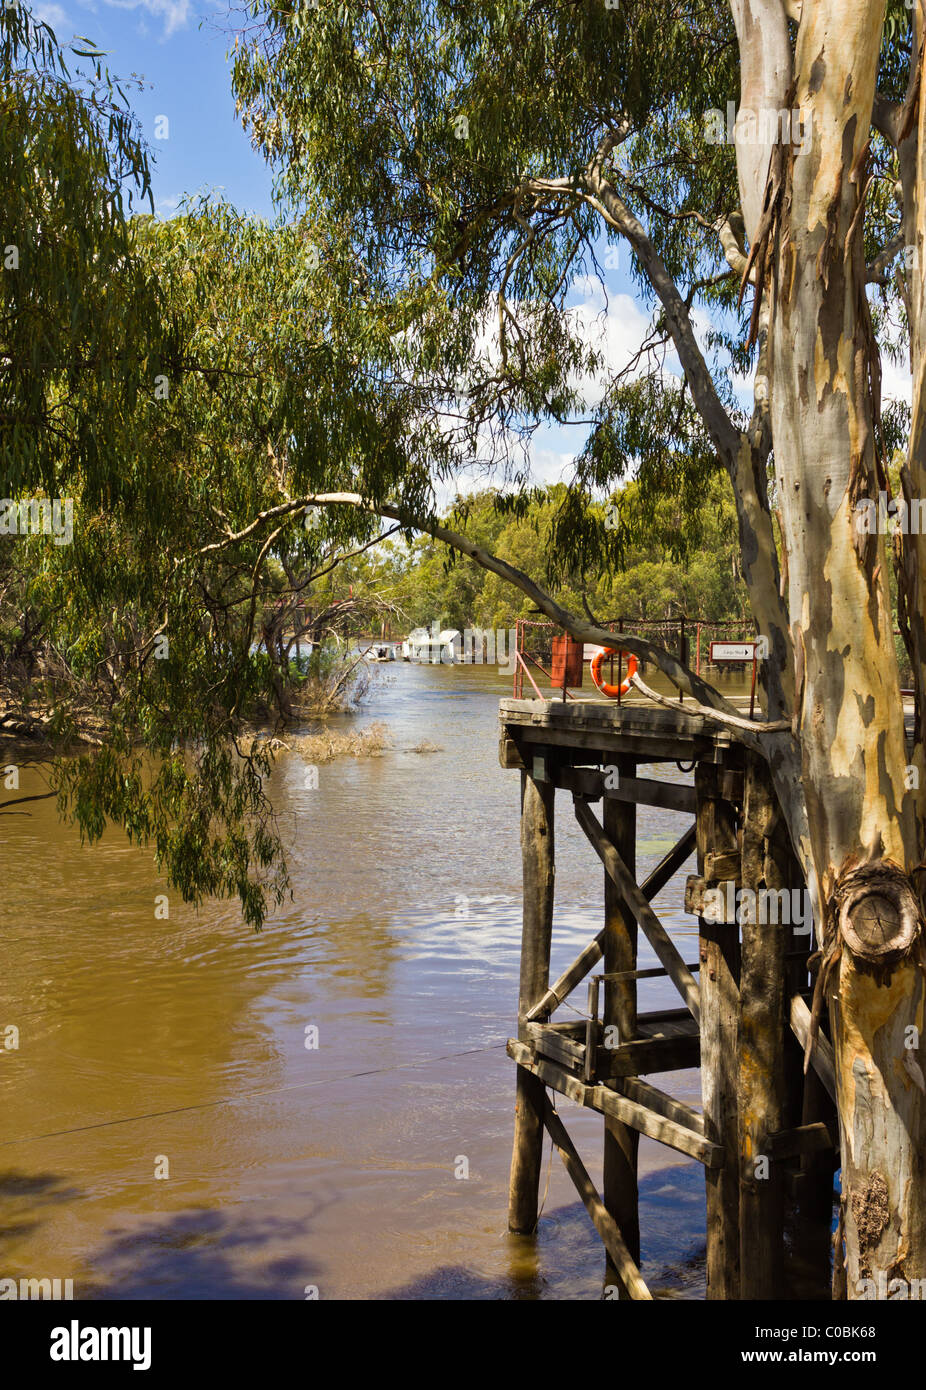 Part of the old wharf in Port of Echuca. Stock Photo